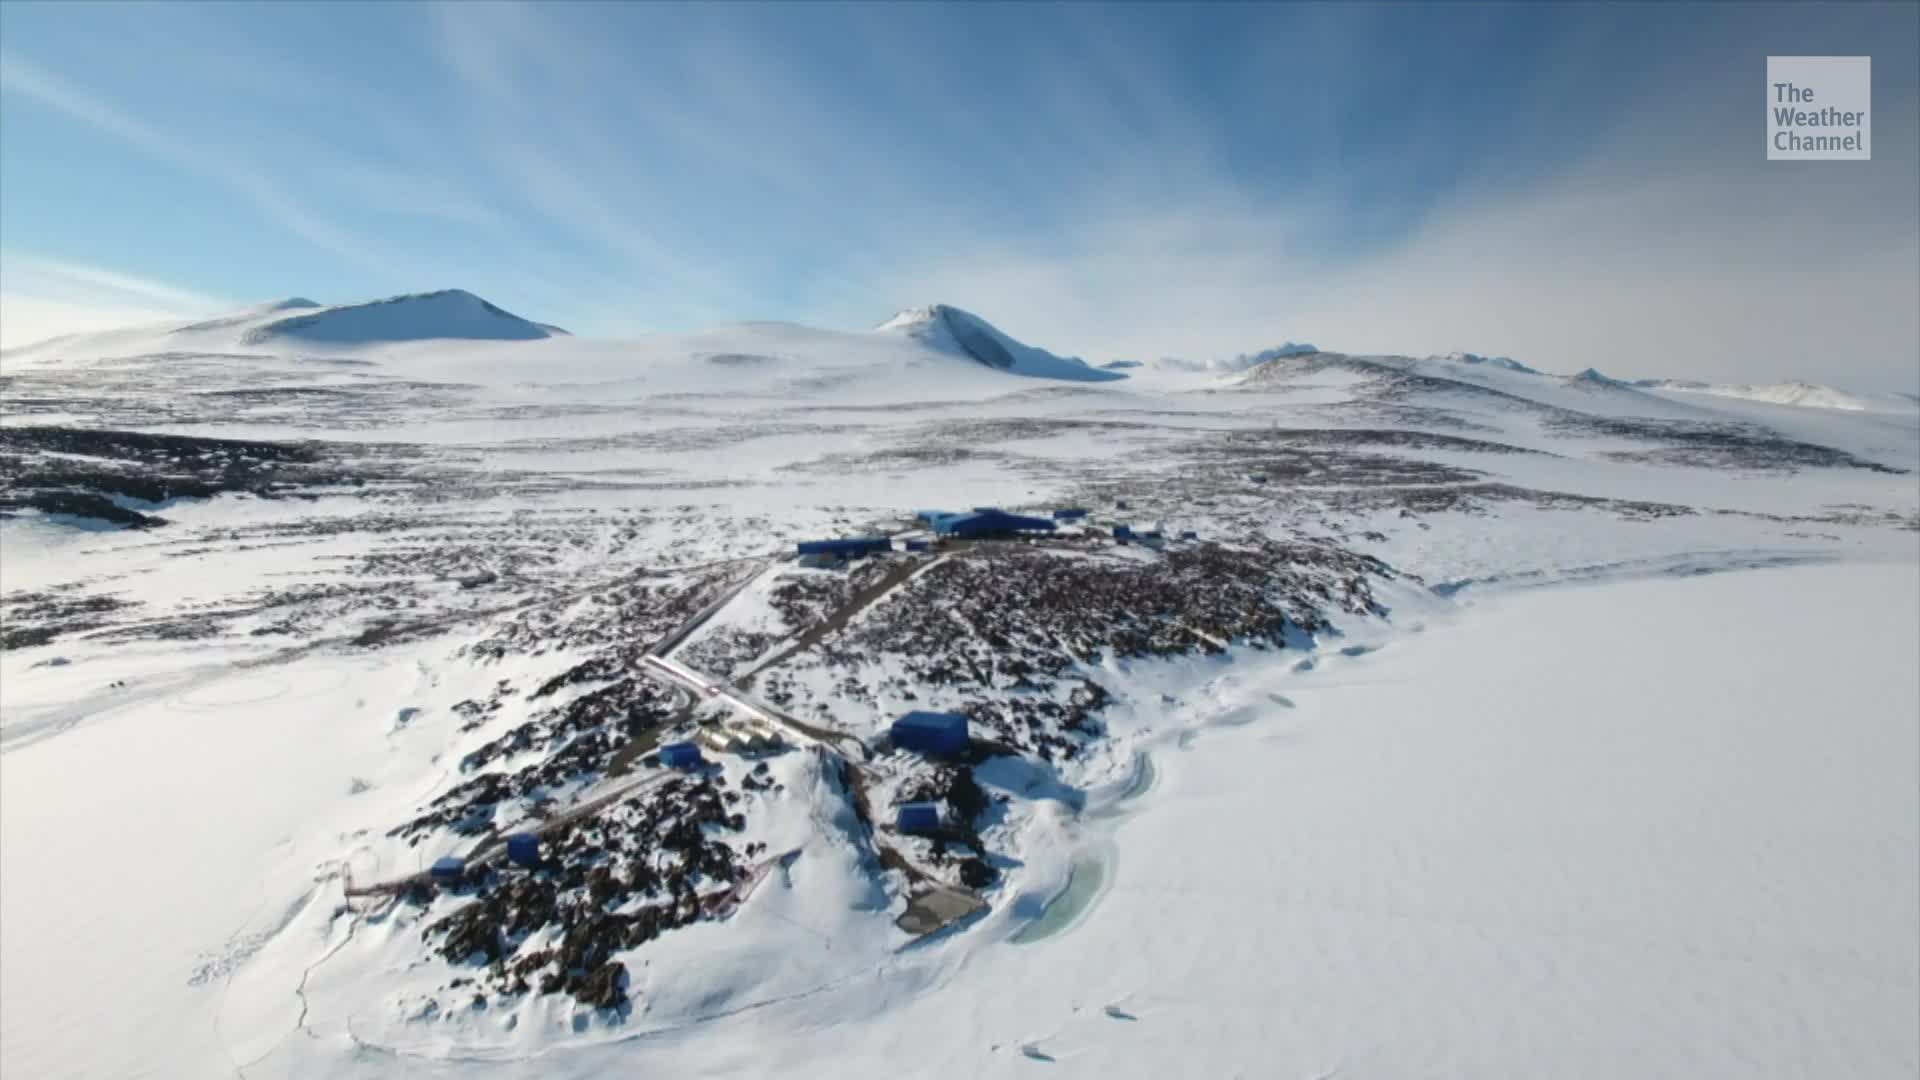 Scientists discovered 90-million-year-old forest soil and roots near the South Pole, suggesting a much warmer prehistoric world than previously thought. The study was published in the journal Nature.